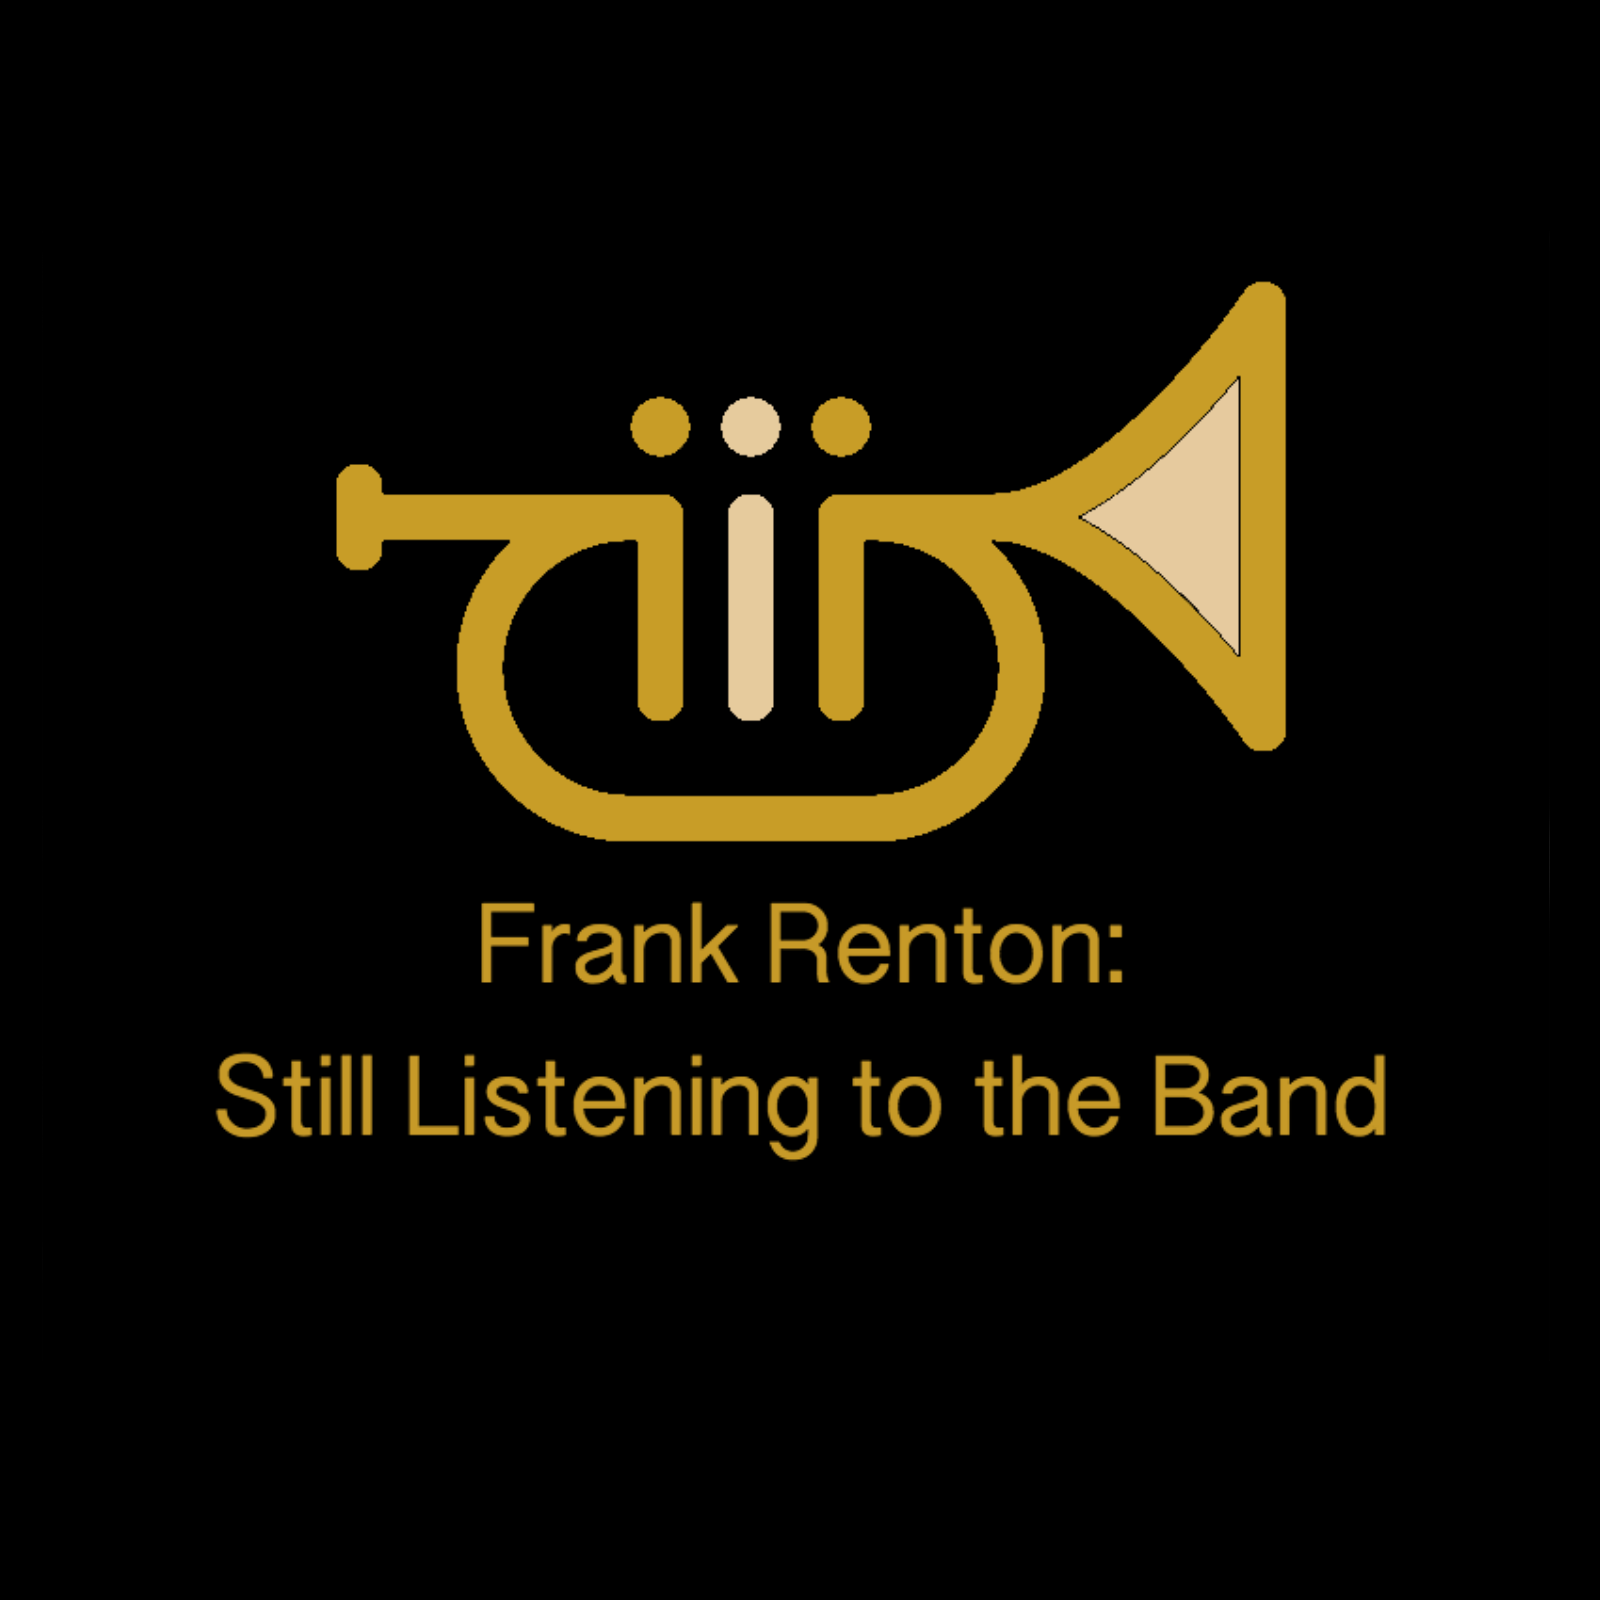 Frank Renton: Still Listening to the Band - Ep 27